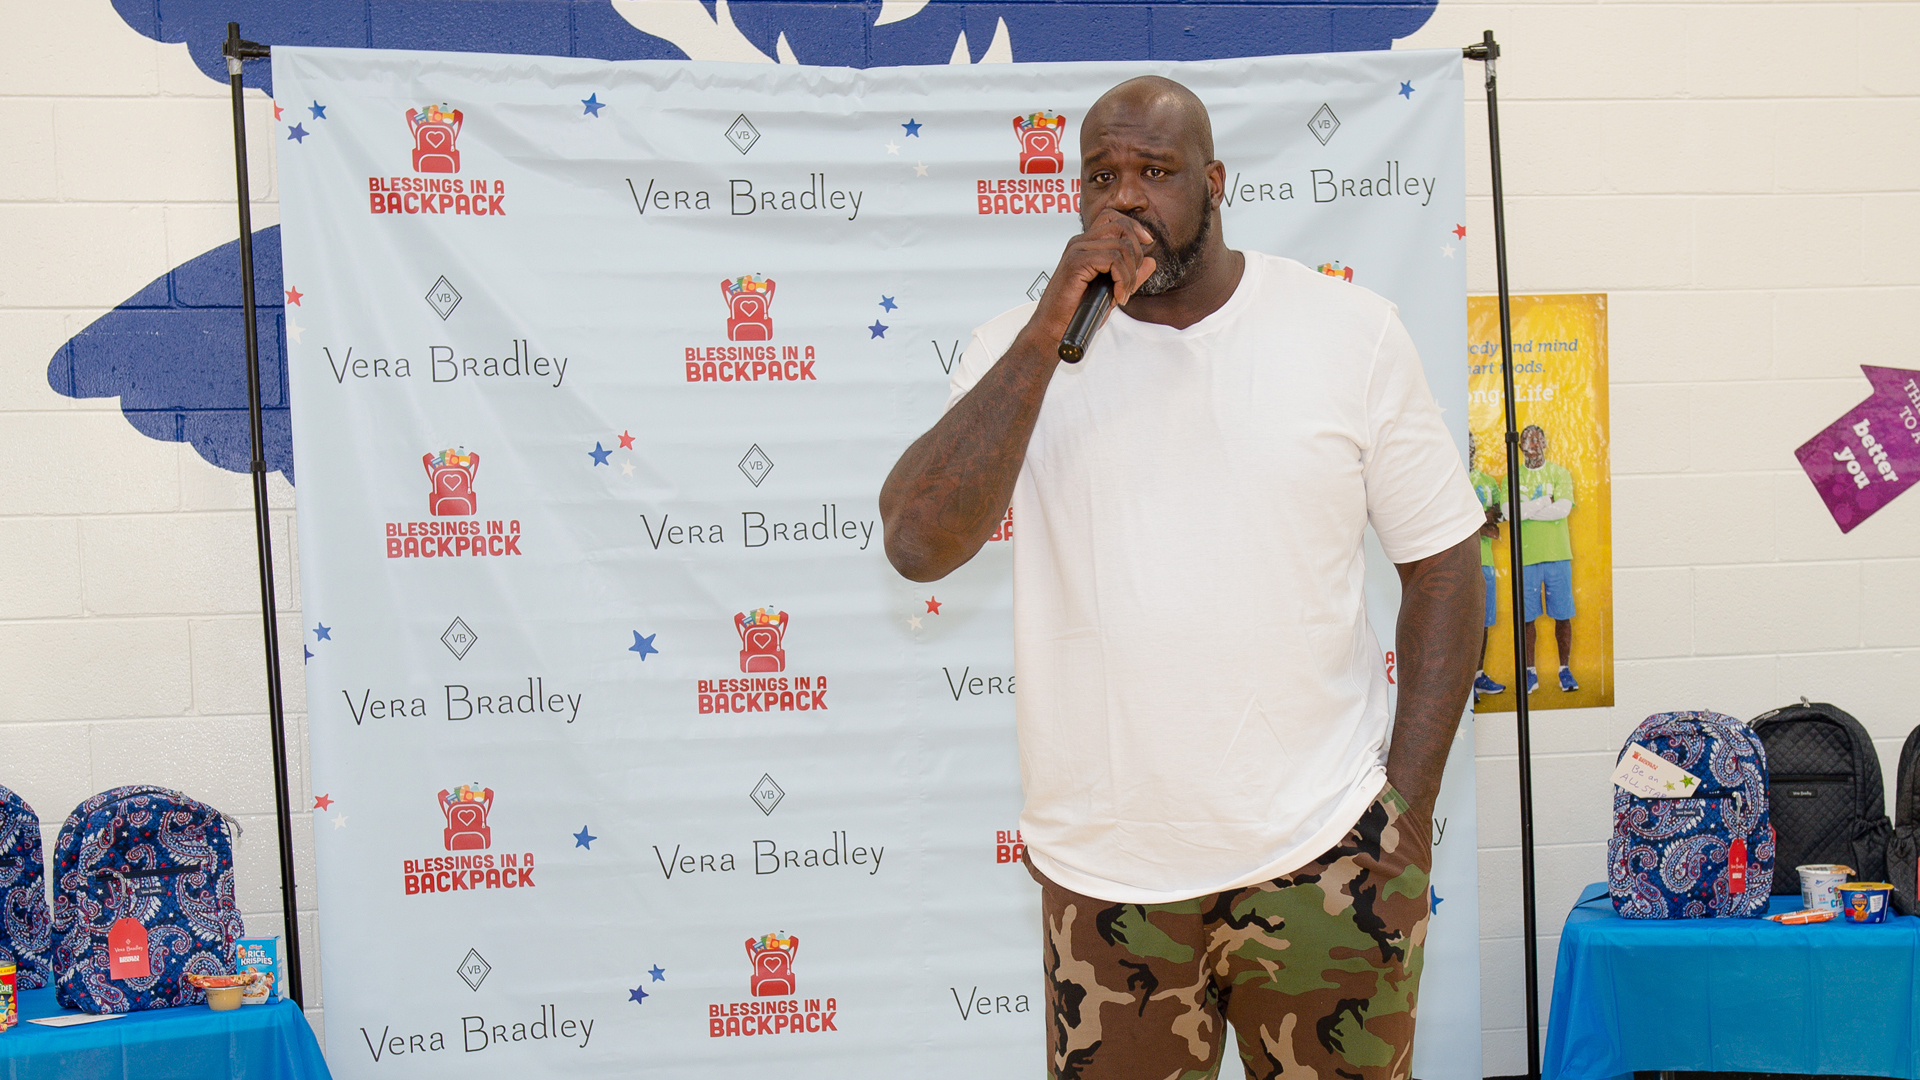 Shaquille O'Neal speaks to students during the Vera Bradley blessing in a backpack at Oakland Elementary School on October 02, 2019 in McDonough, Georgia. (Credit: Marcus Ingram/Getty Images for Vera Bradley)